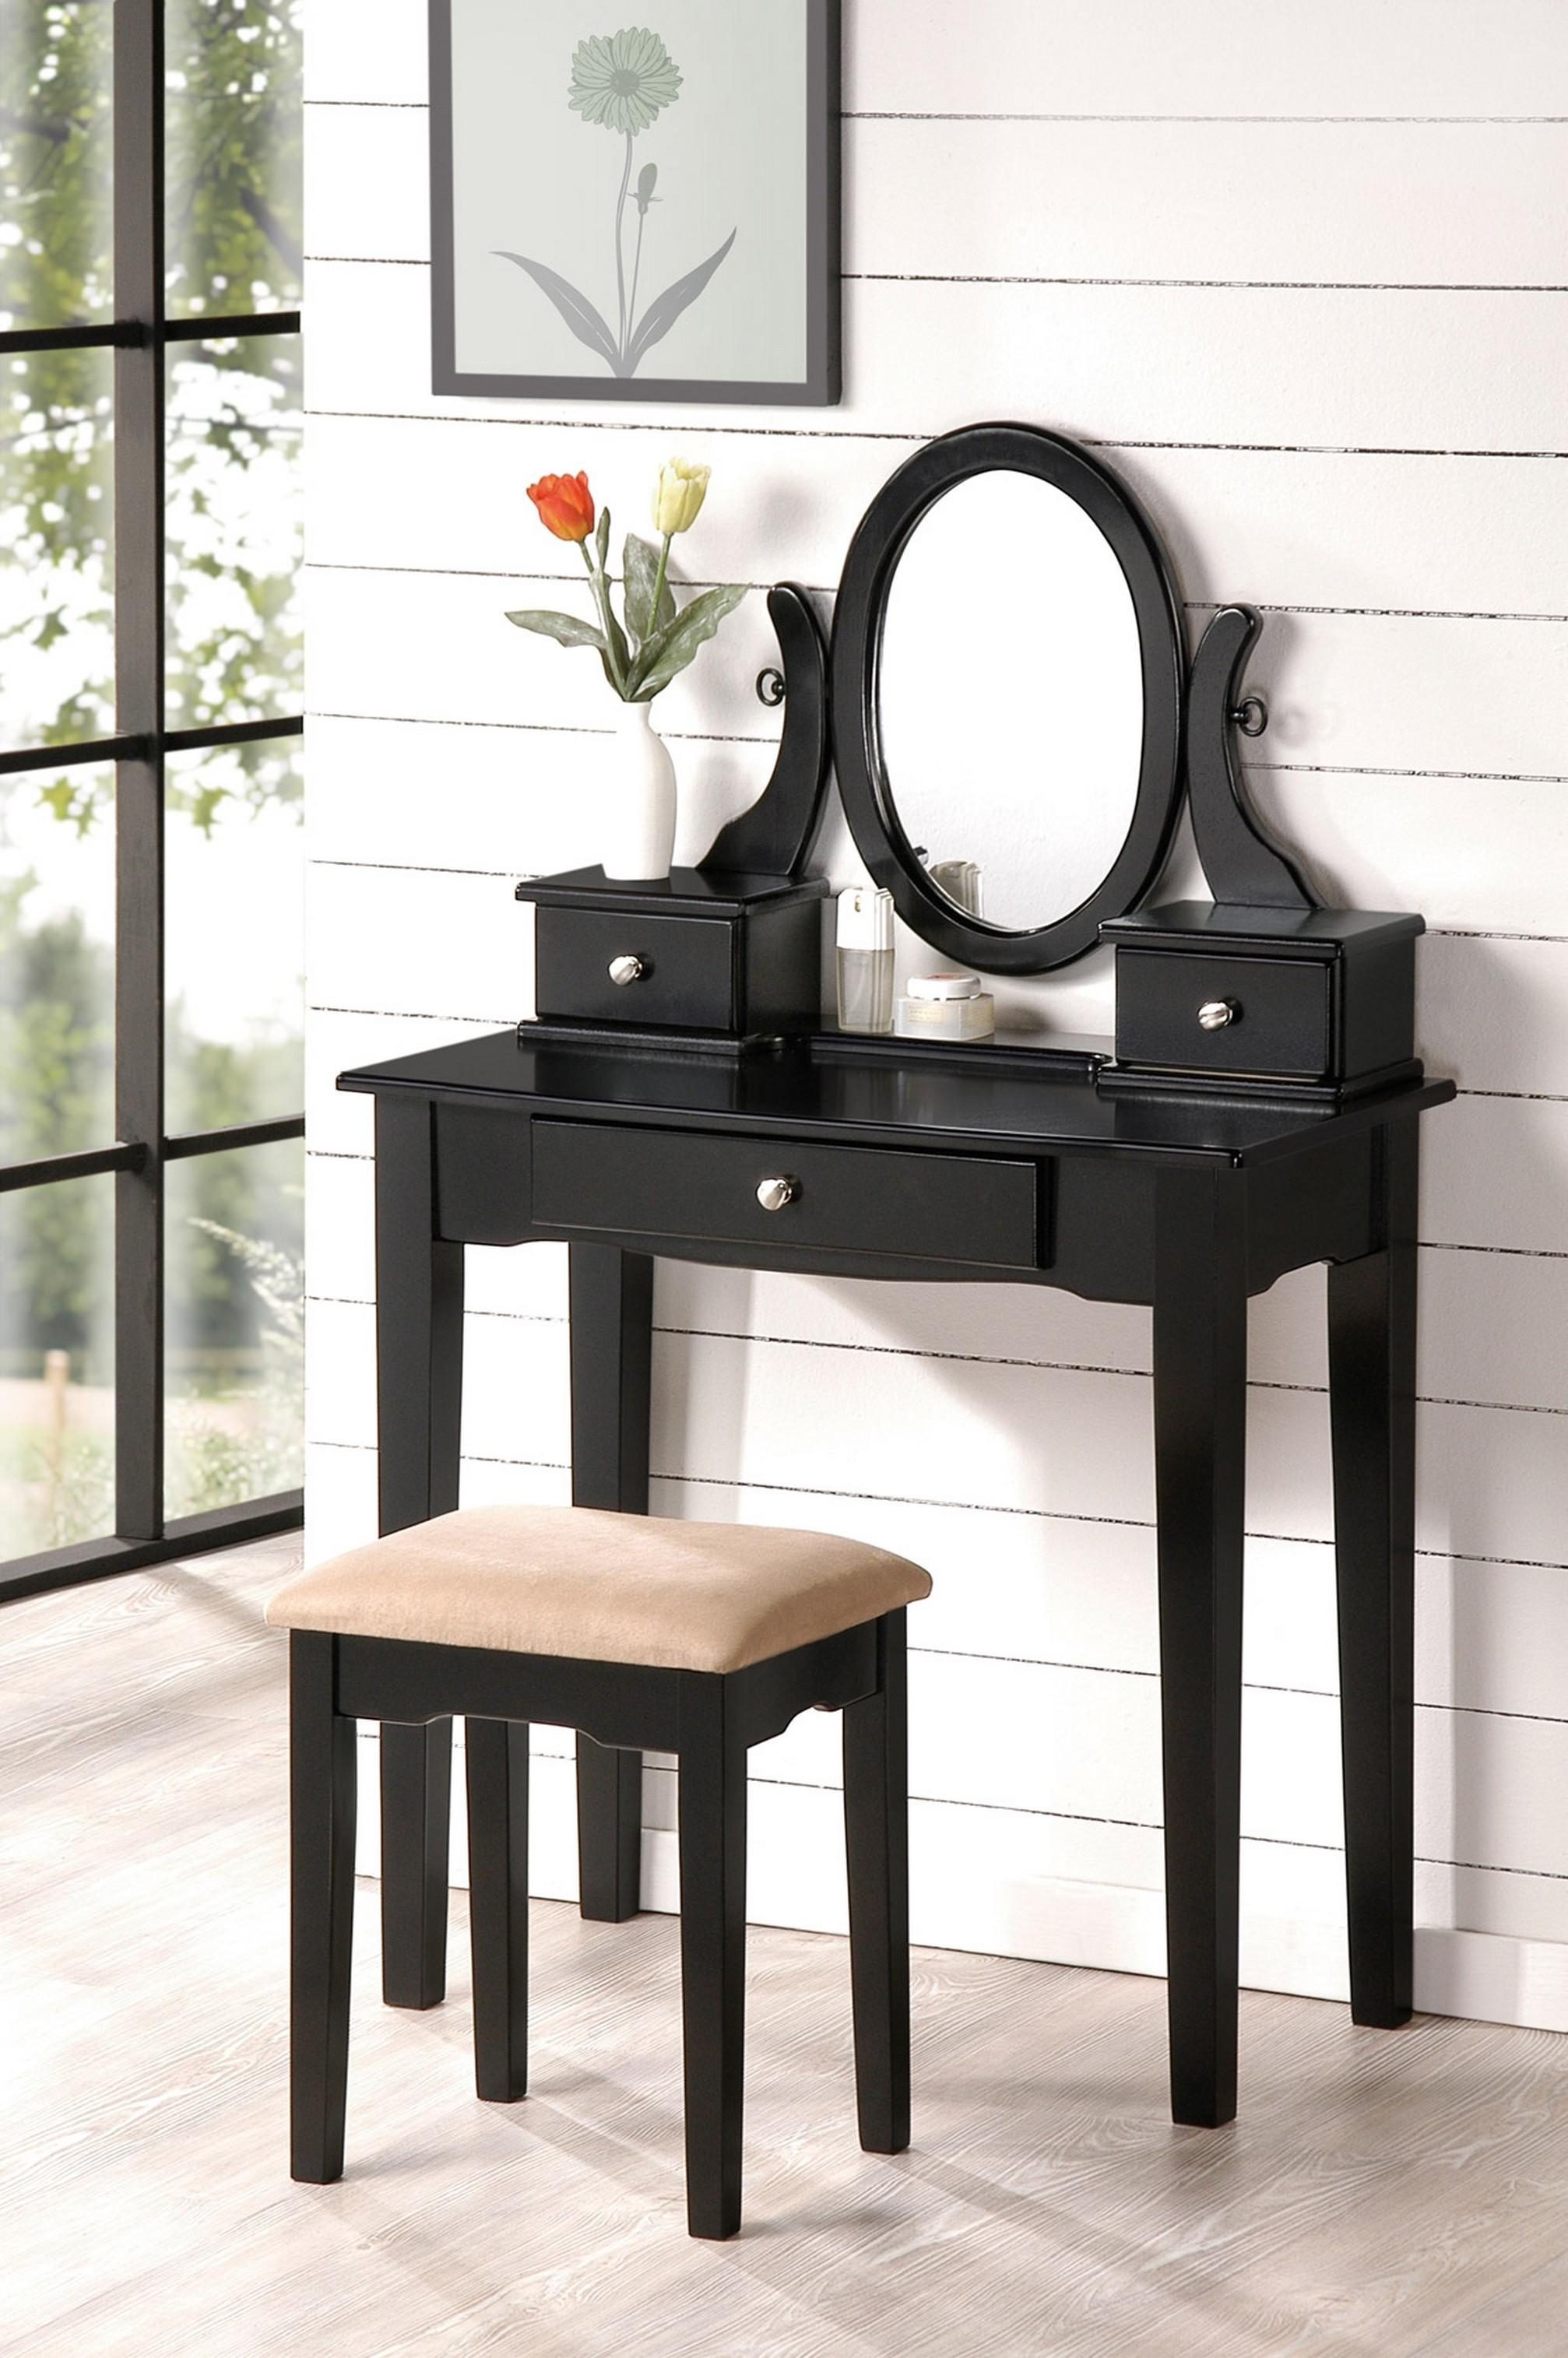 Bedroom Furniture Sets : Dressing Table Black Vanity Desk With Intended For Black Dressing Mirror (Image 5 of 20)